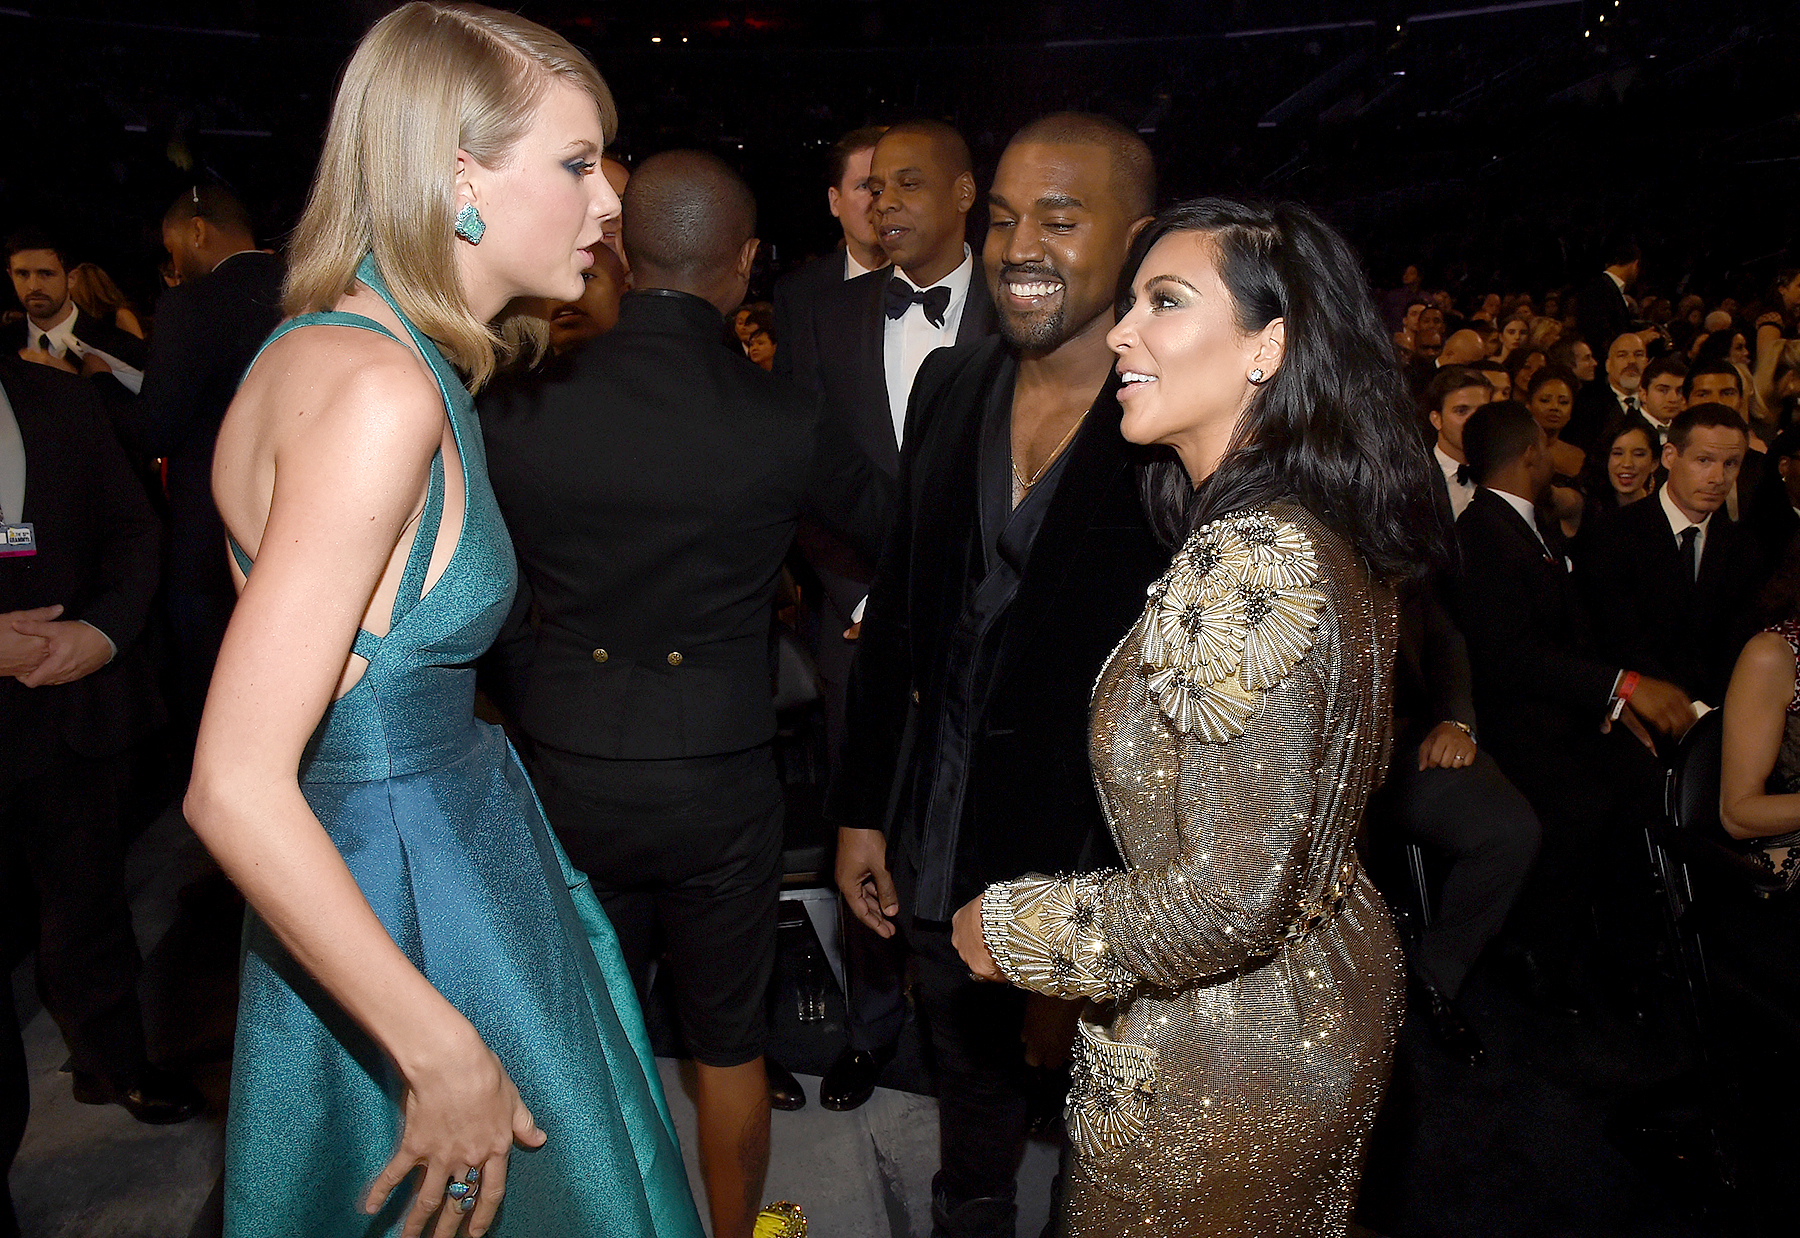 Taylor Swift, Kanye West and Kim Kardashian attend the 57th Annual Grammy Awards at the Staples Center in Los Angeles on February 8, 2015.